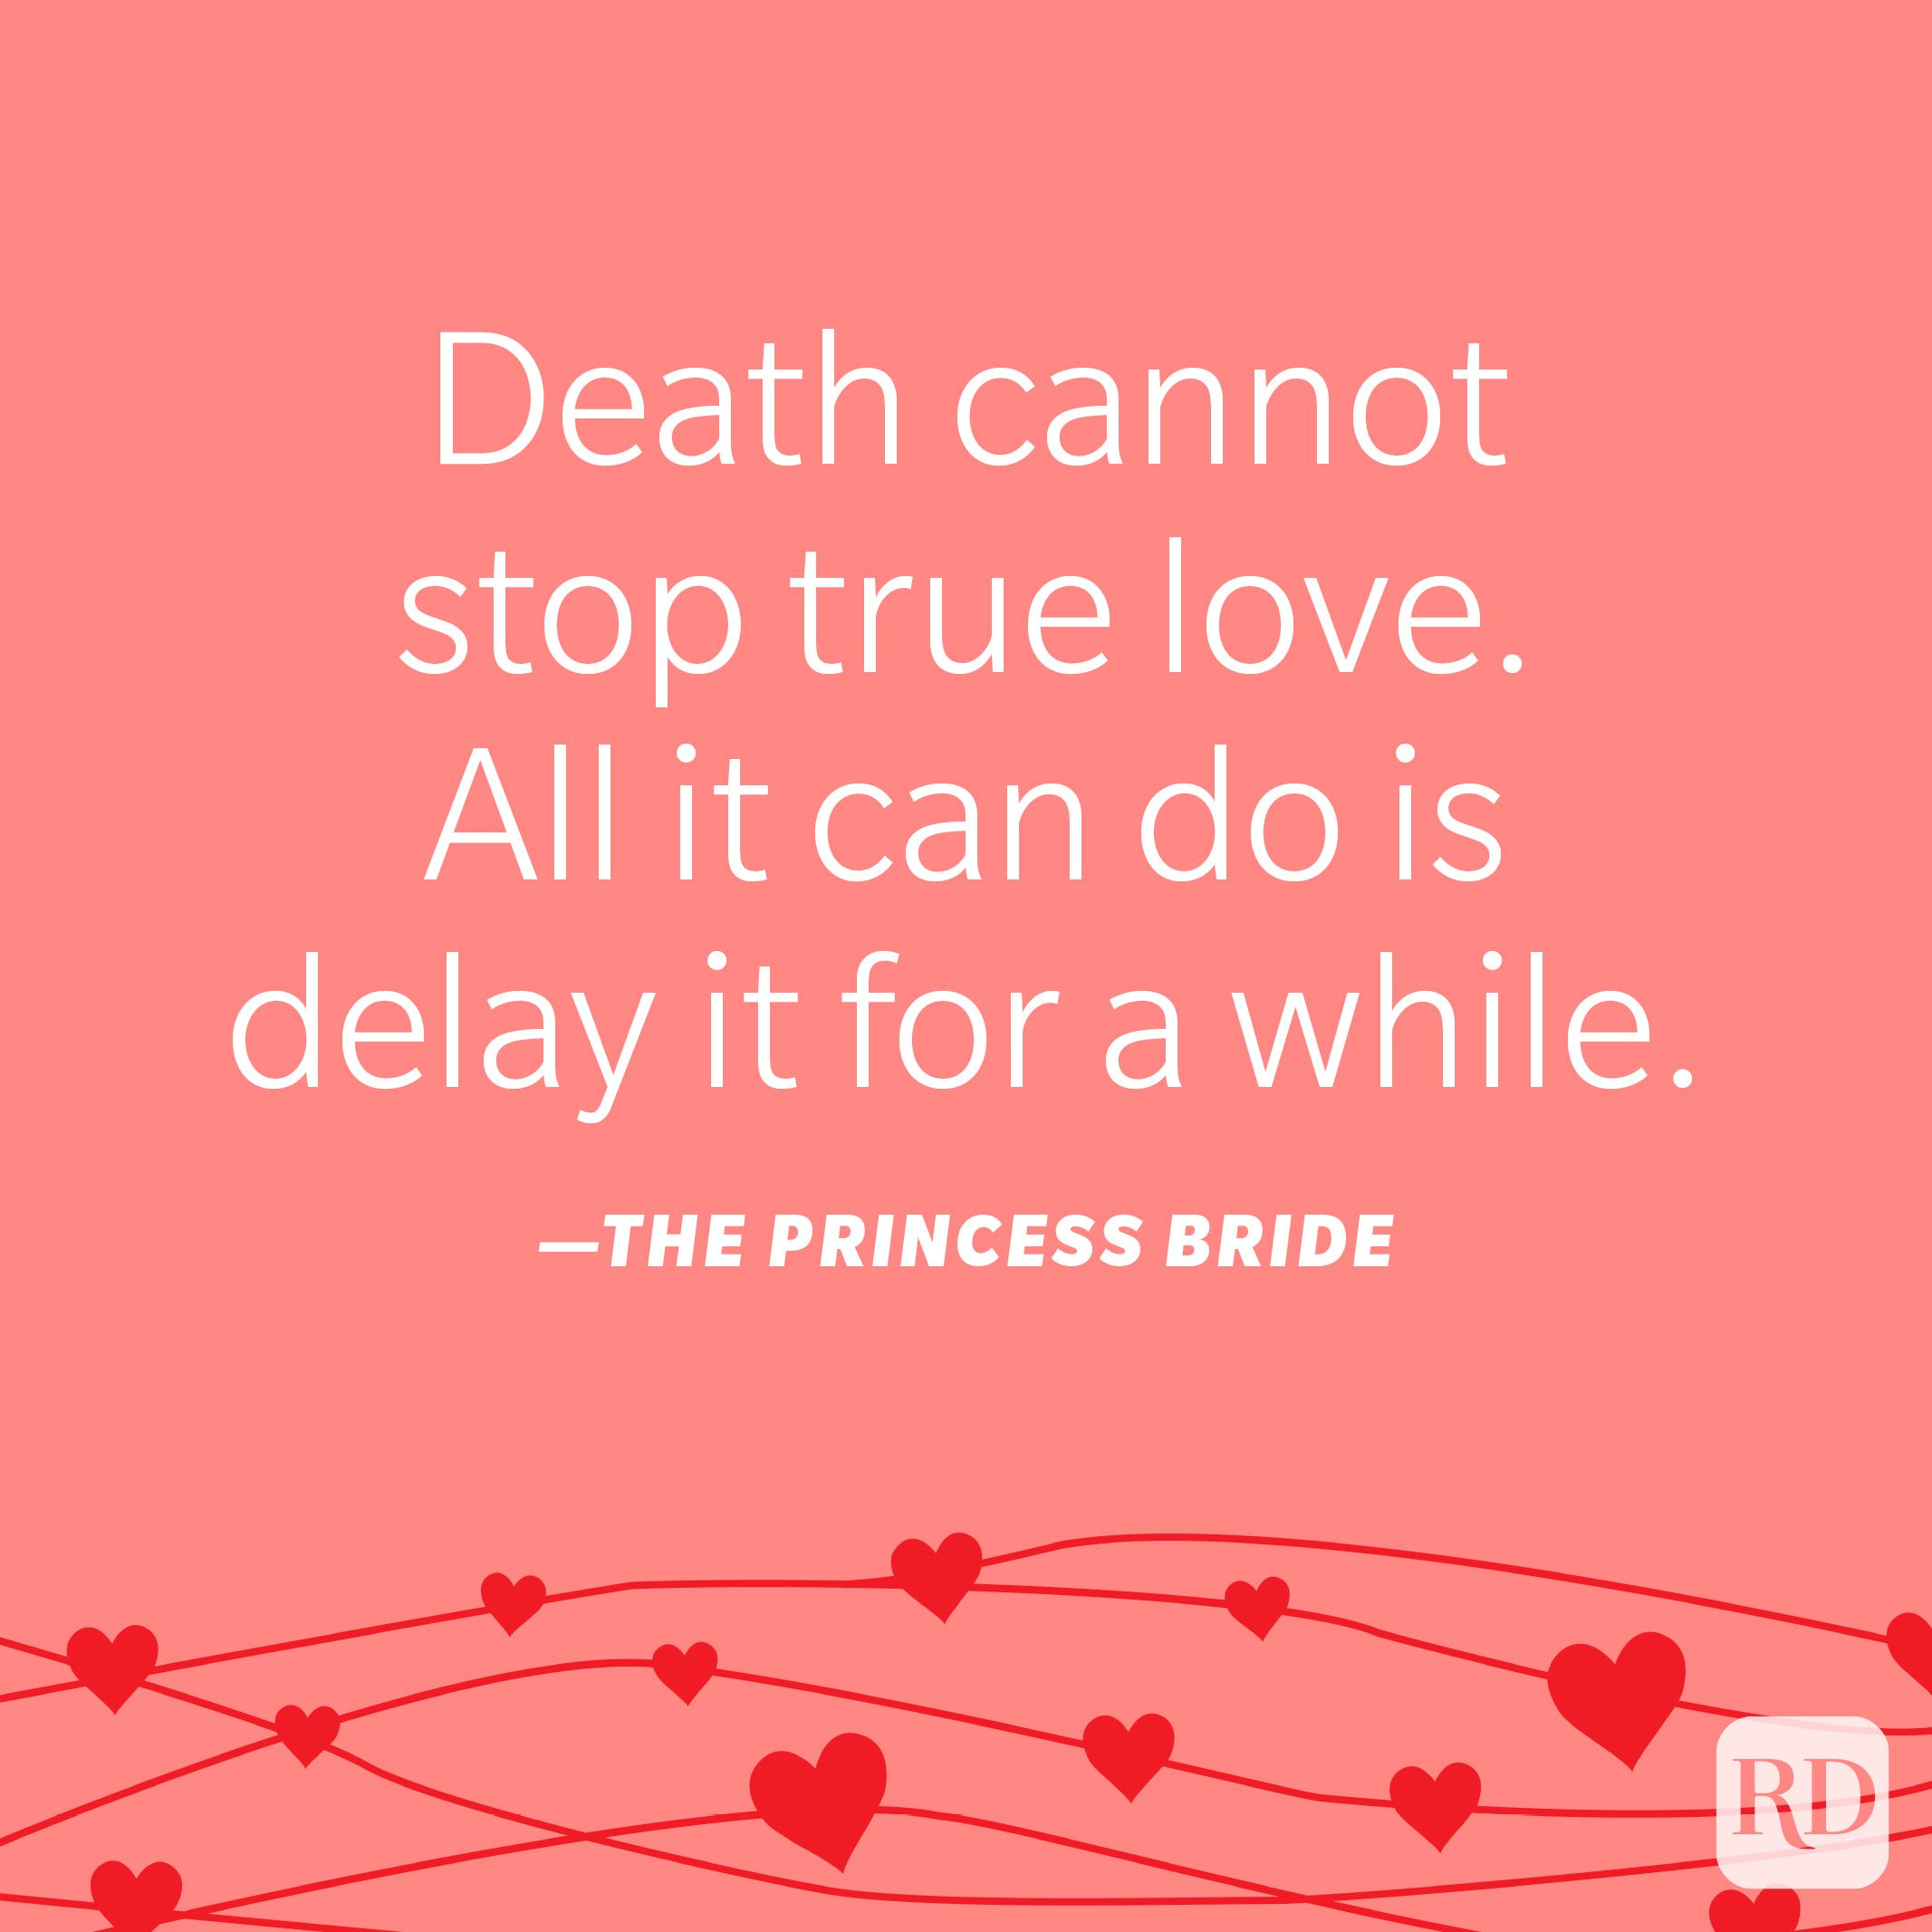 """""""Death cannot stop true love. All it can do is delay it for a while."""" —The Princess Bride"""